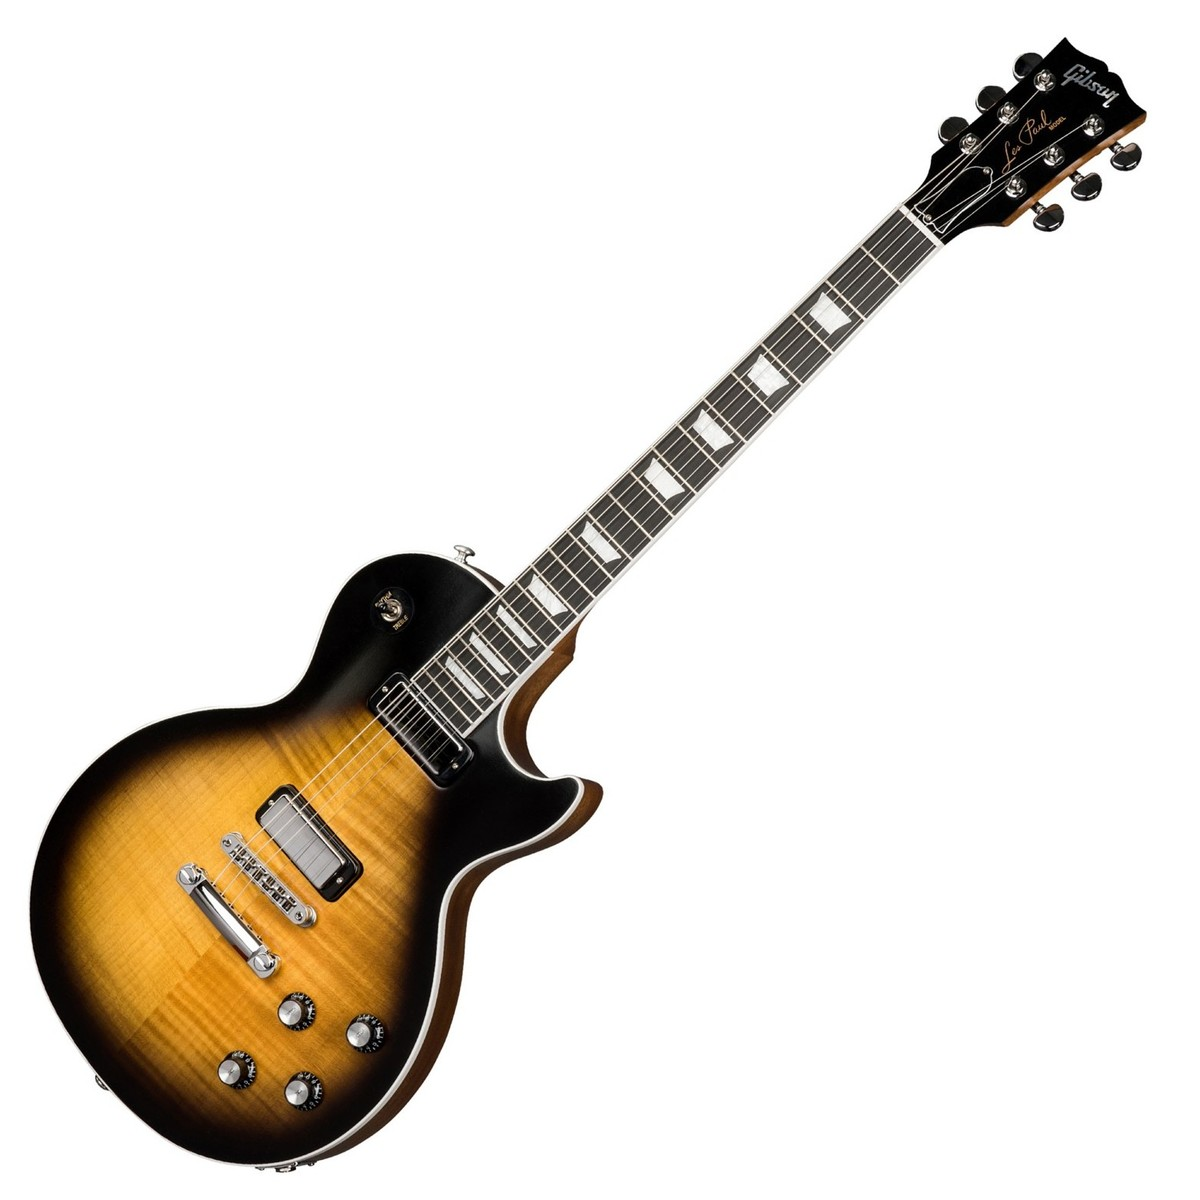 Gibson Les Paul Deluxe Player Plus 2018, Satin Vintage Sunburst - B on gibson 50s wiring, gibson les paul wiring mods, gibson switch wiring, gibson es-335 wiring,